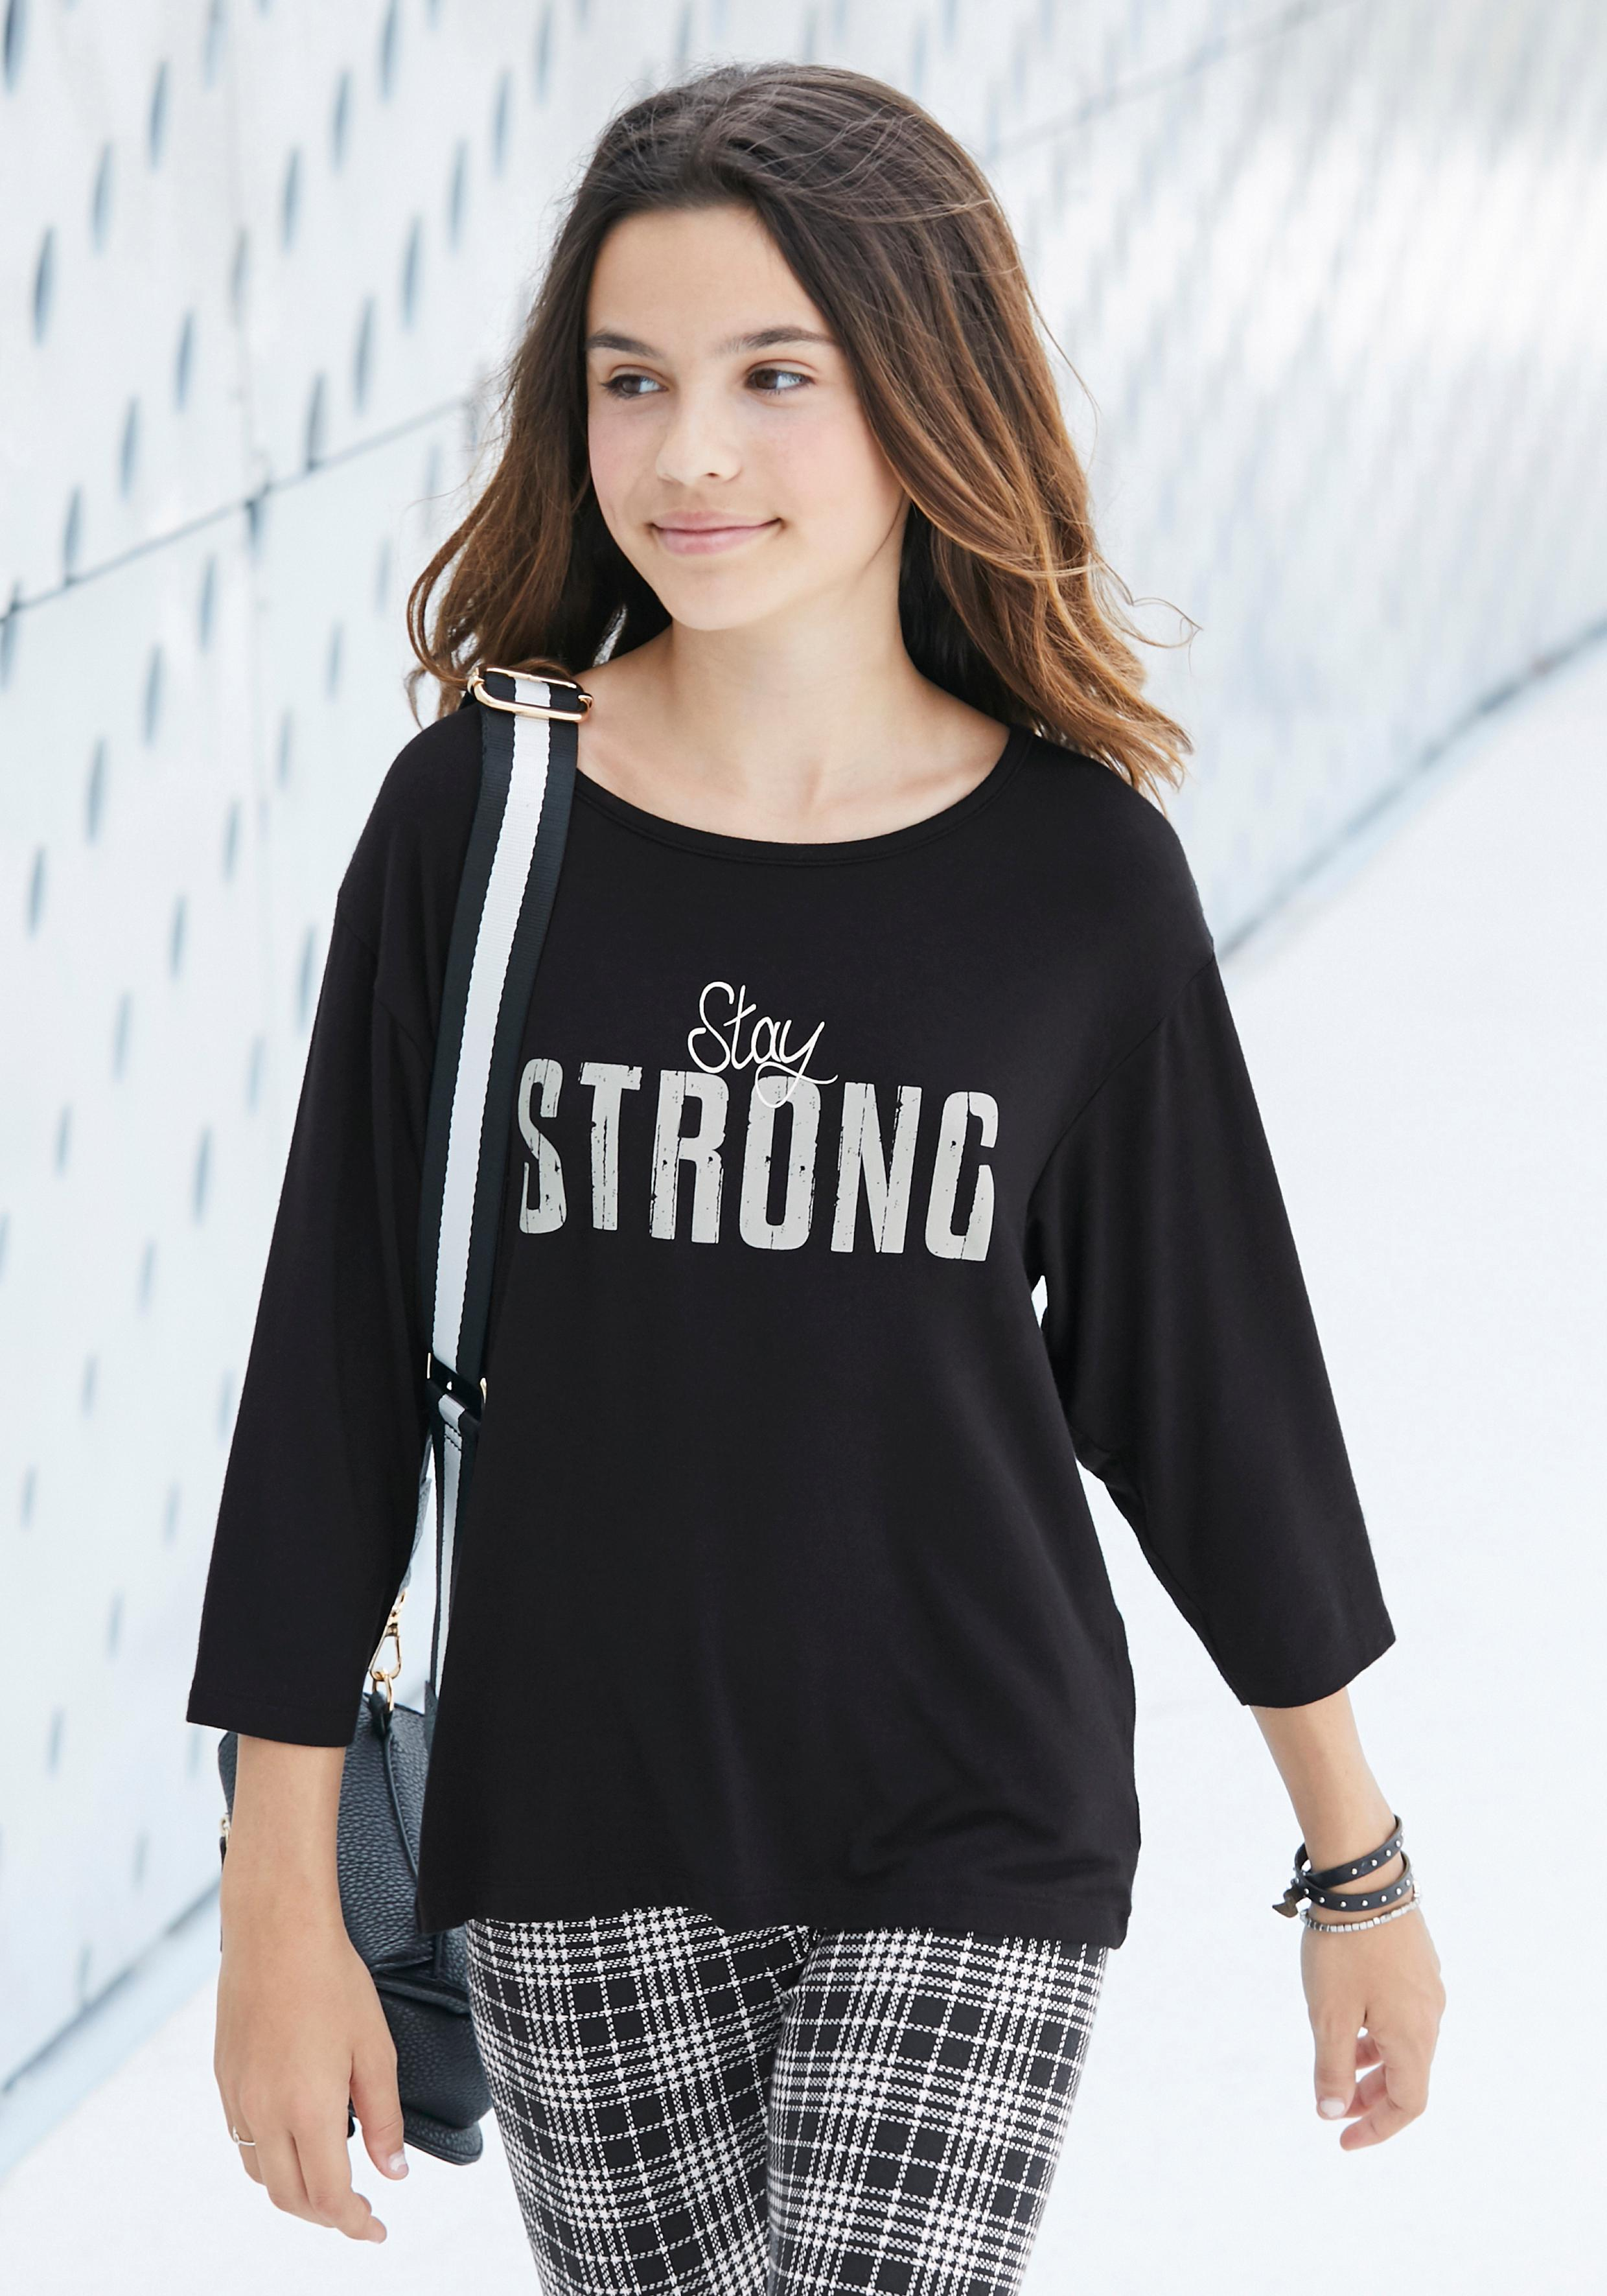 Image of Arizona 3/4-Arm-Shirt »Stay STRONG«